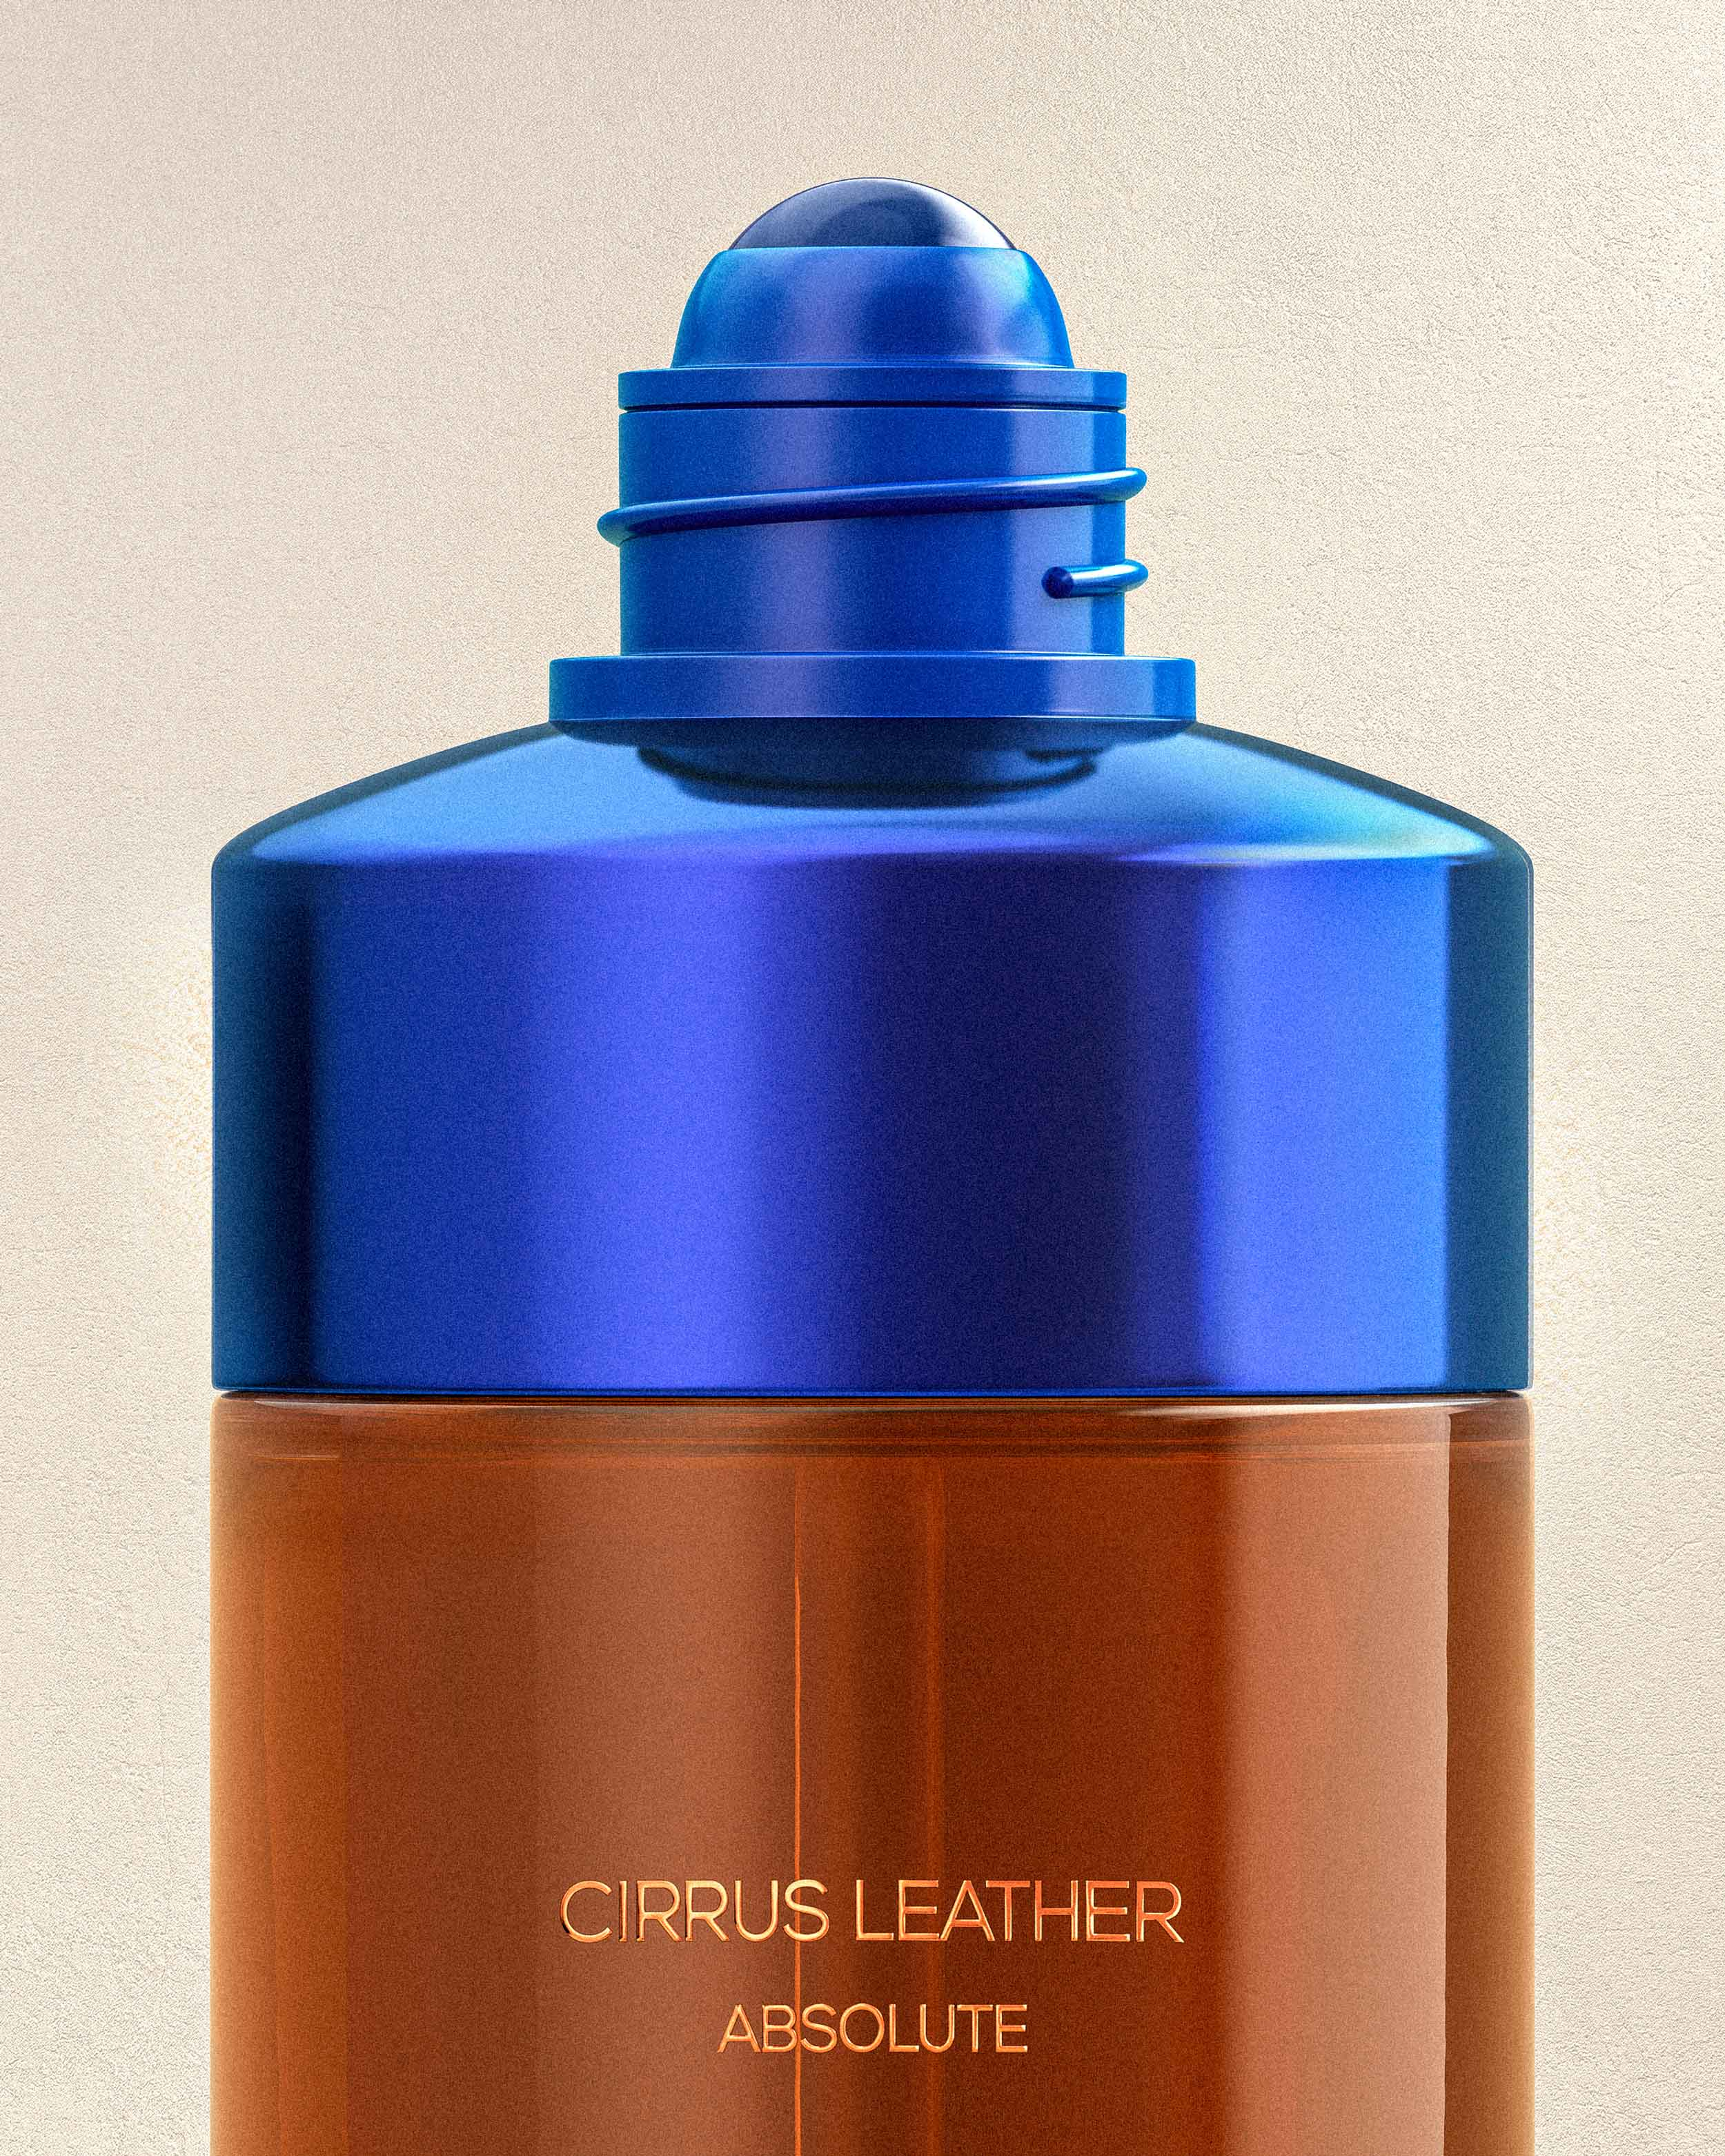 ABSOLUTE - CIRRUS LEATHER